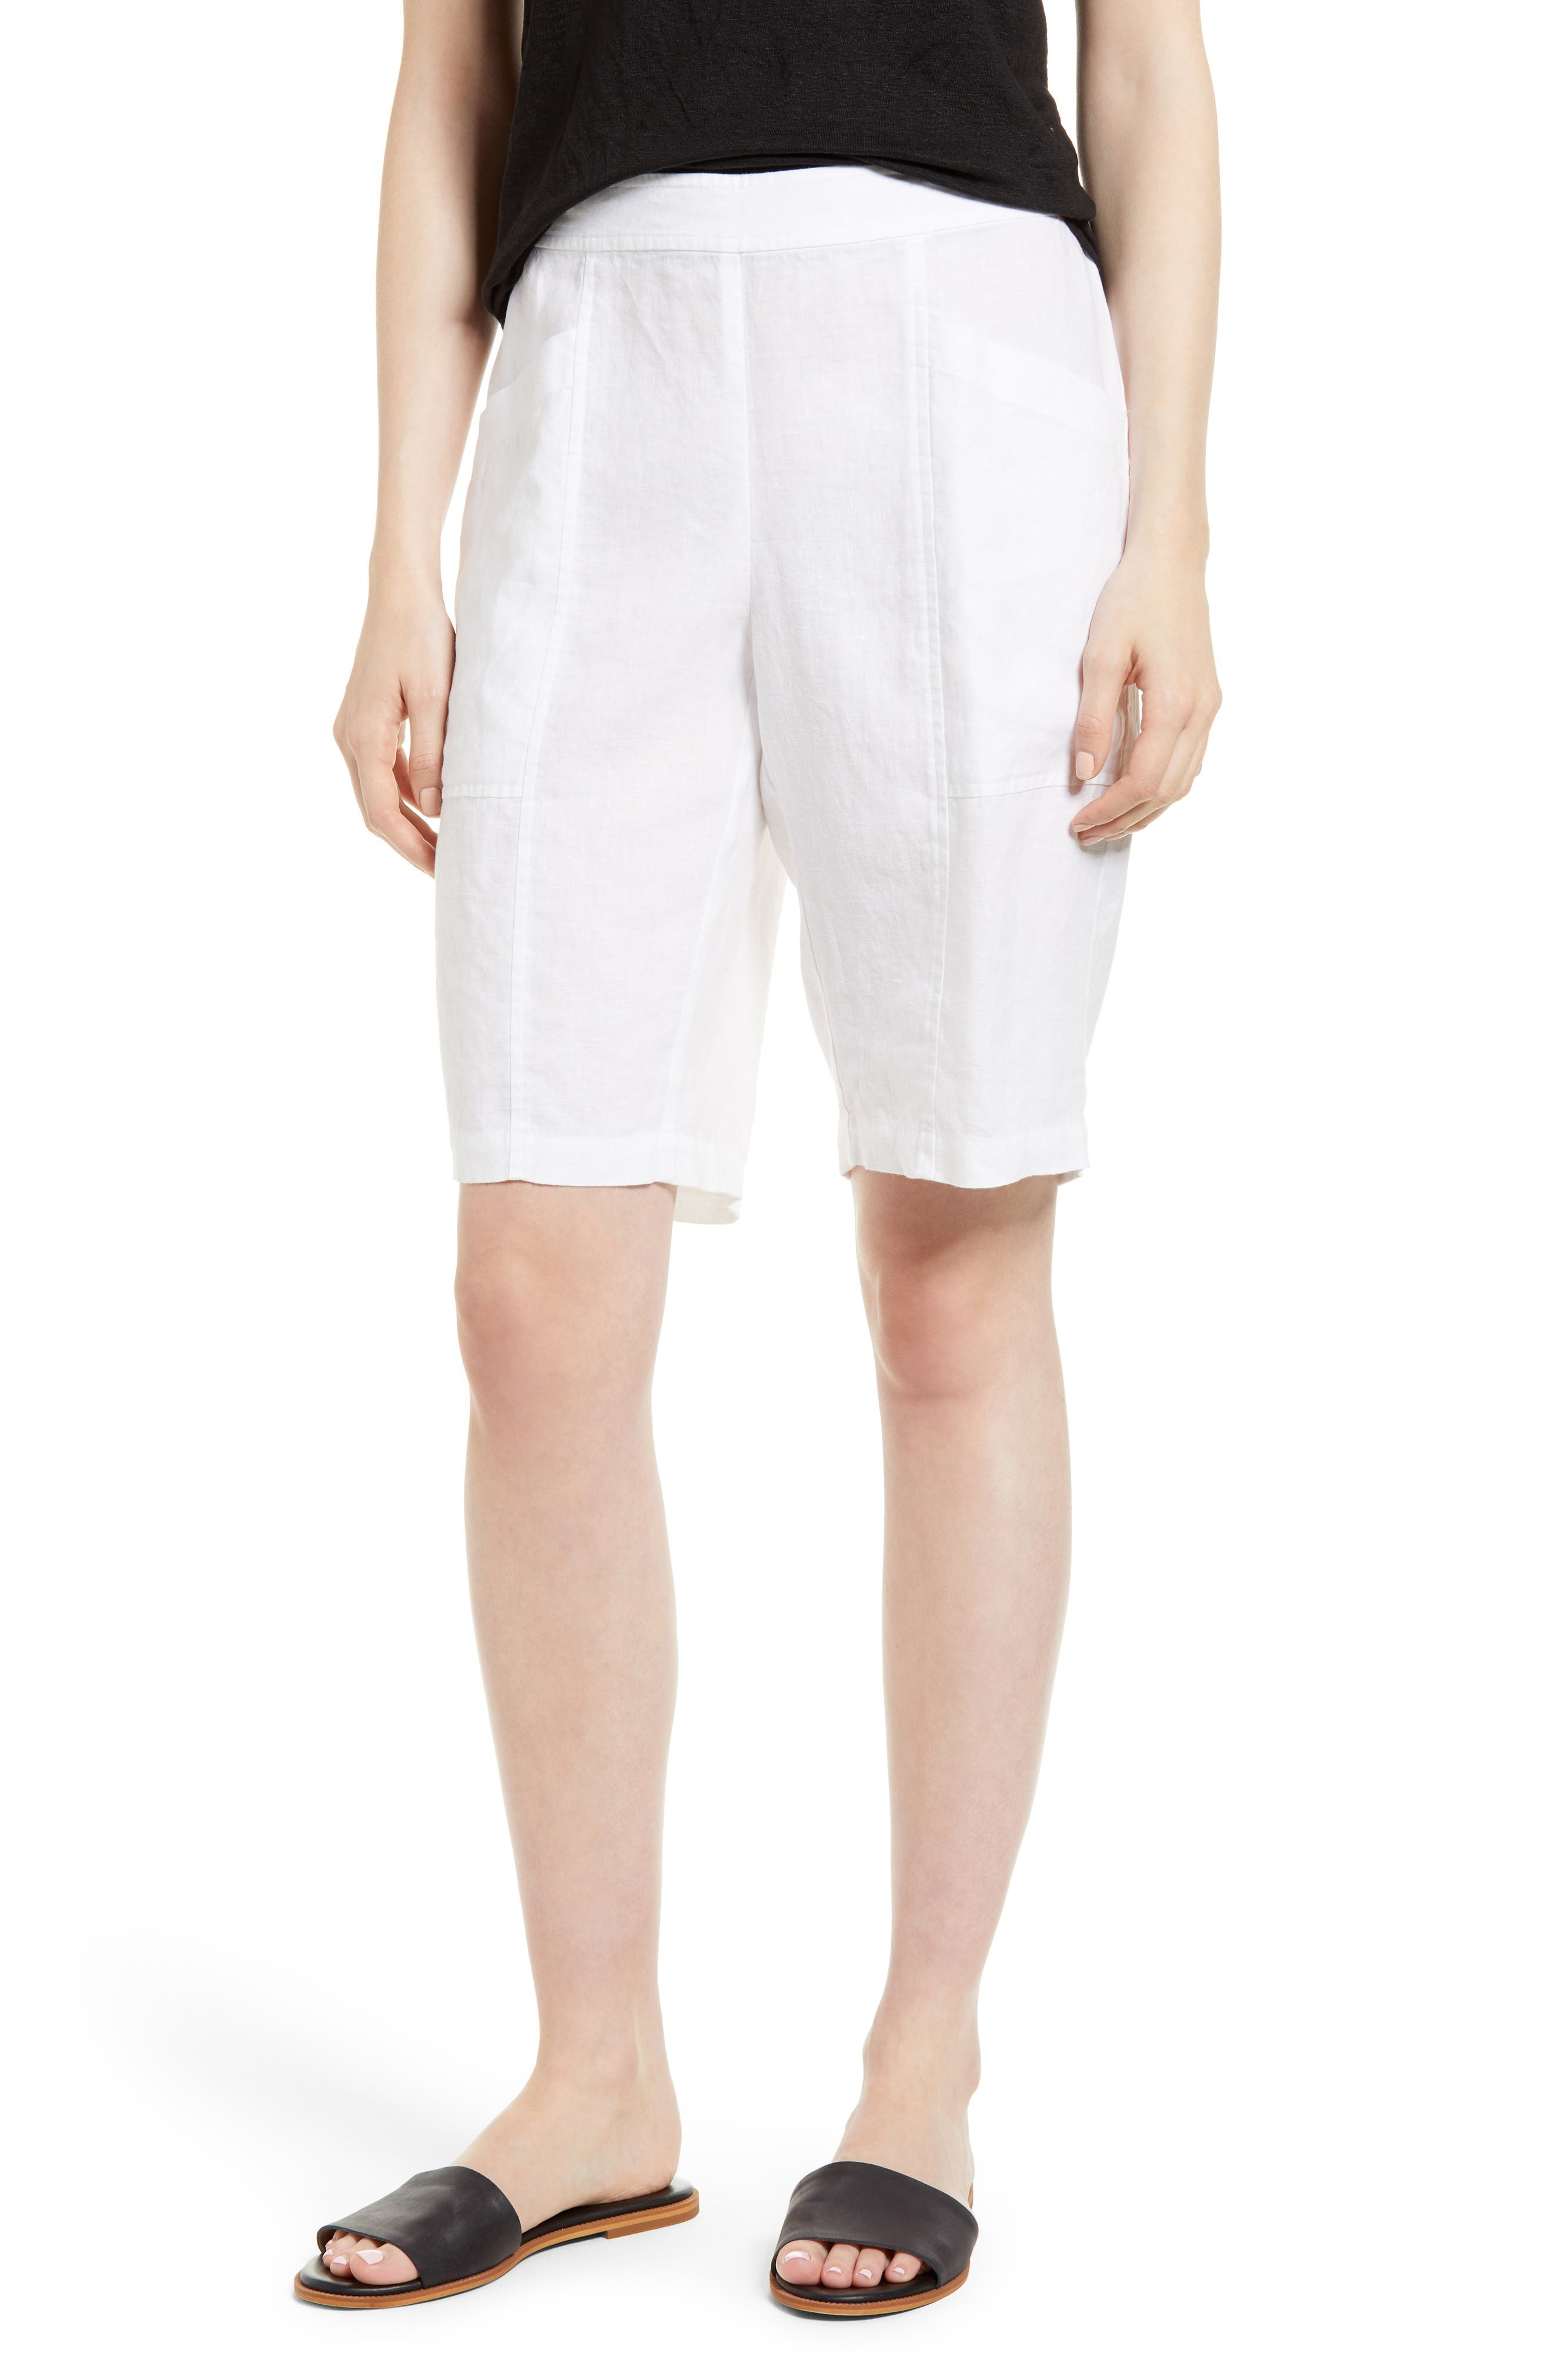 Organic Linen City Shorts,                         Main,                         color, White